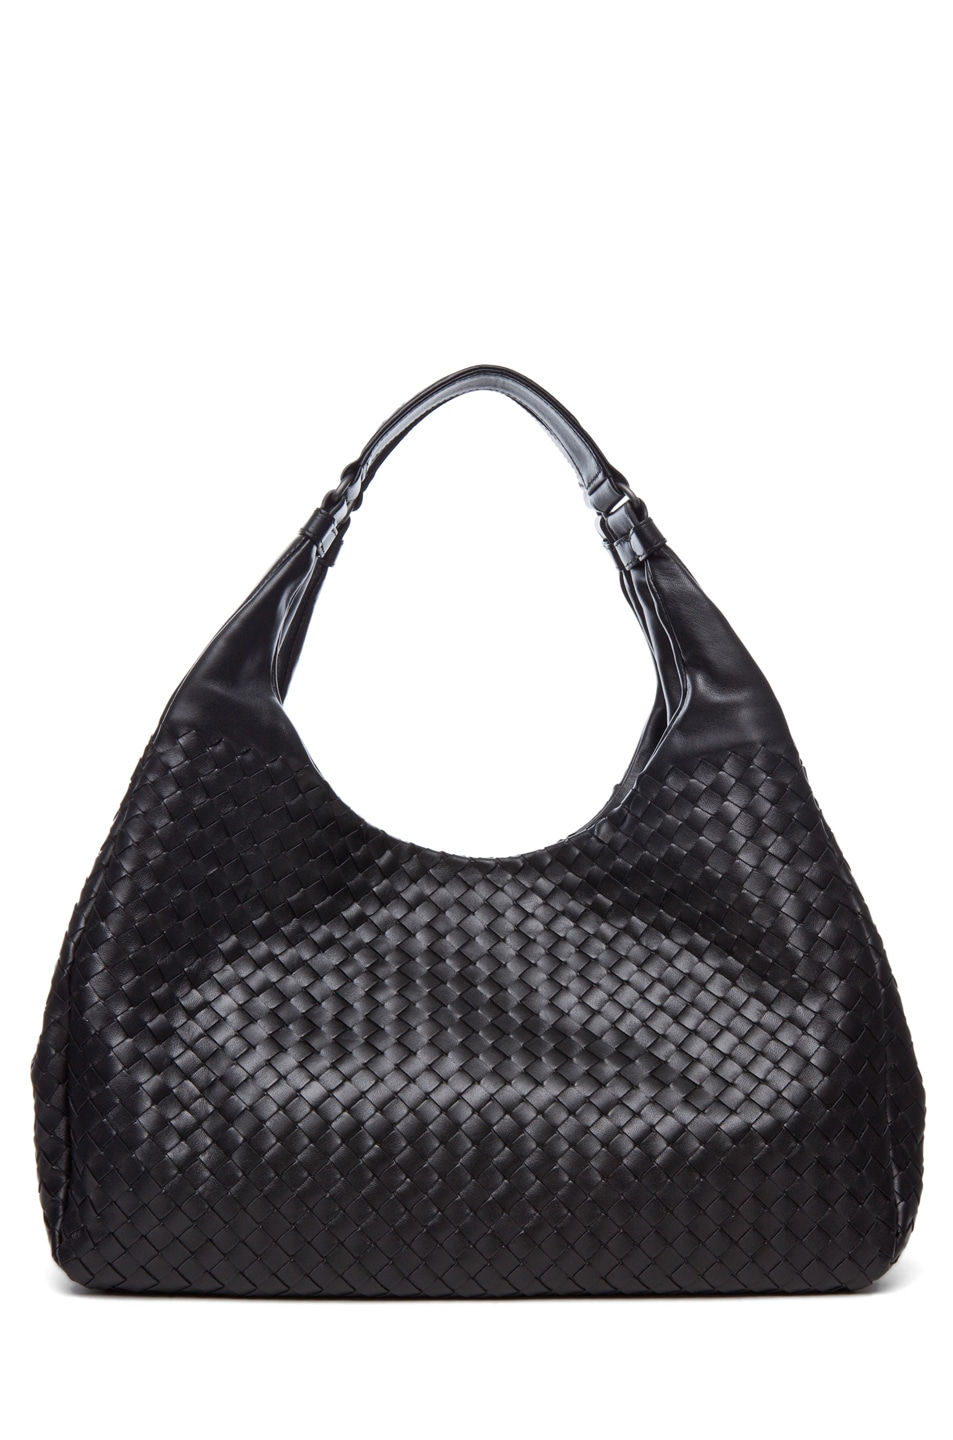 Image 1 of Bottega Veneta Large Campana Hobo in Black